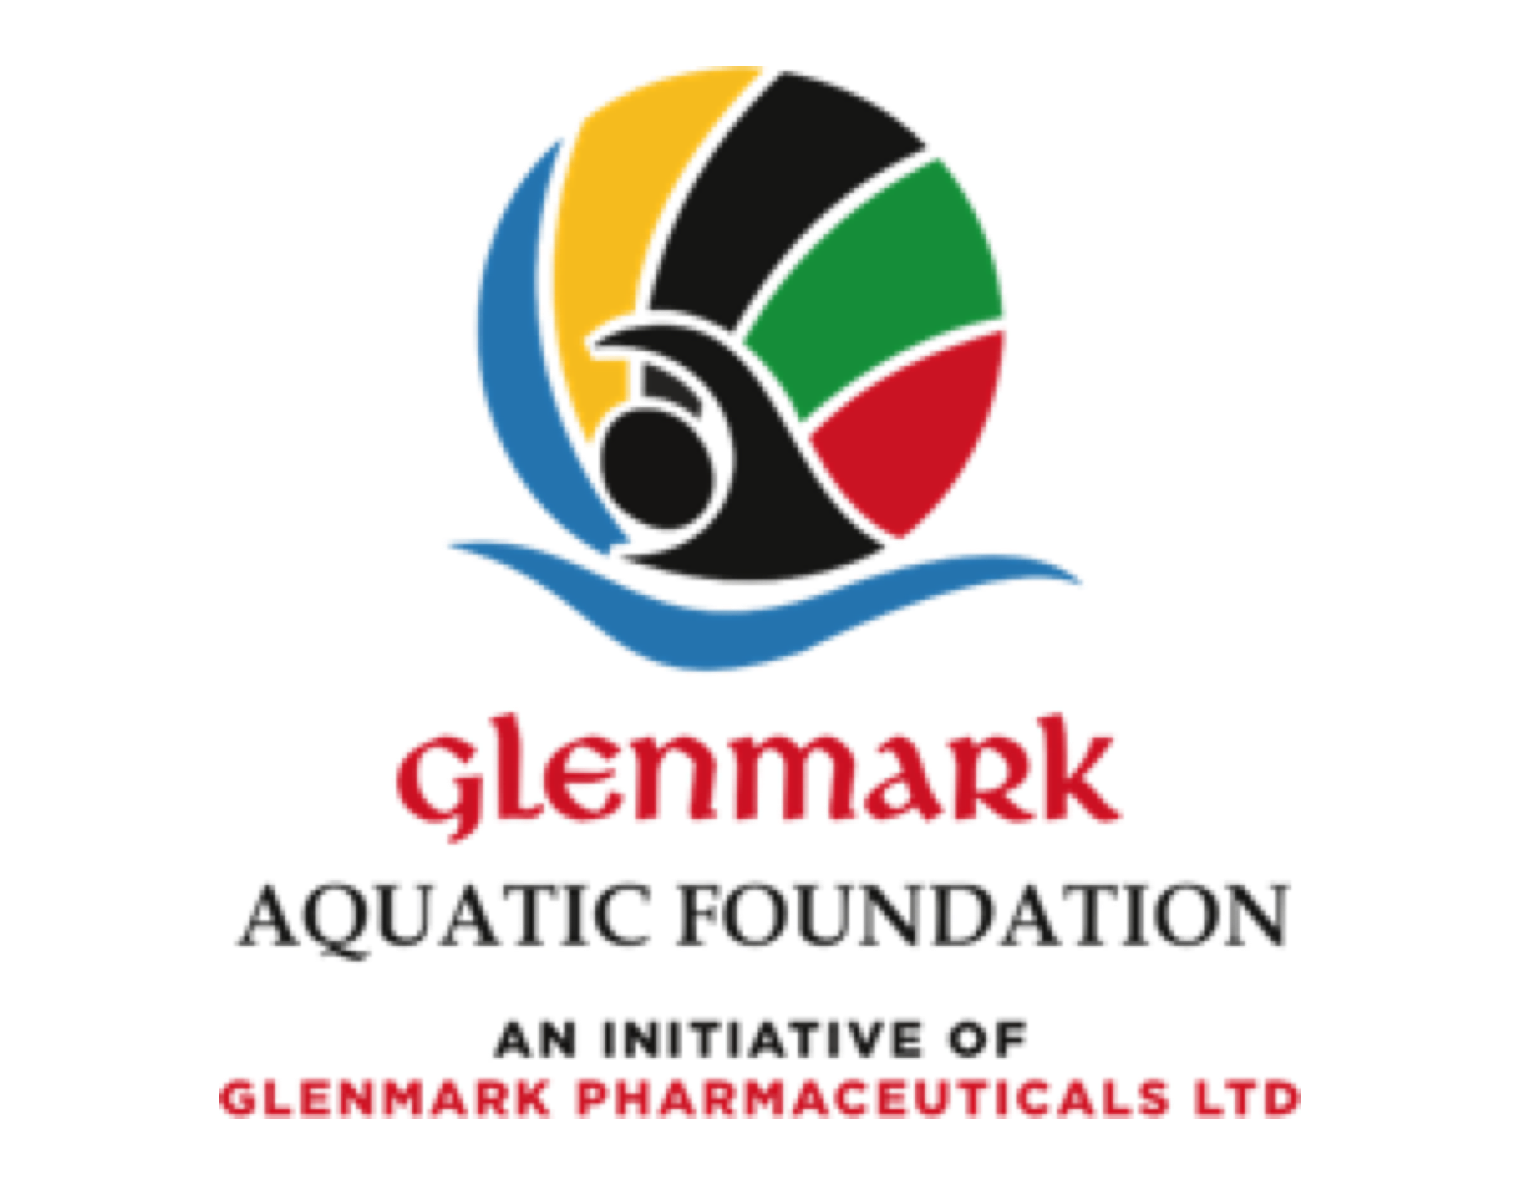 Glenmark Aquatic Foundation